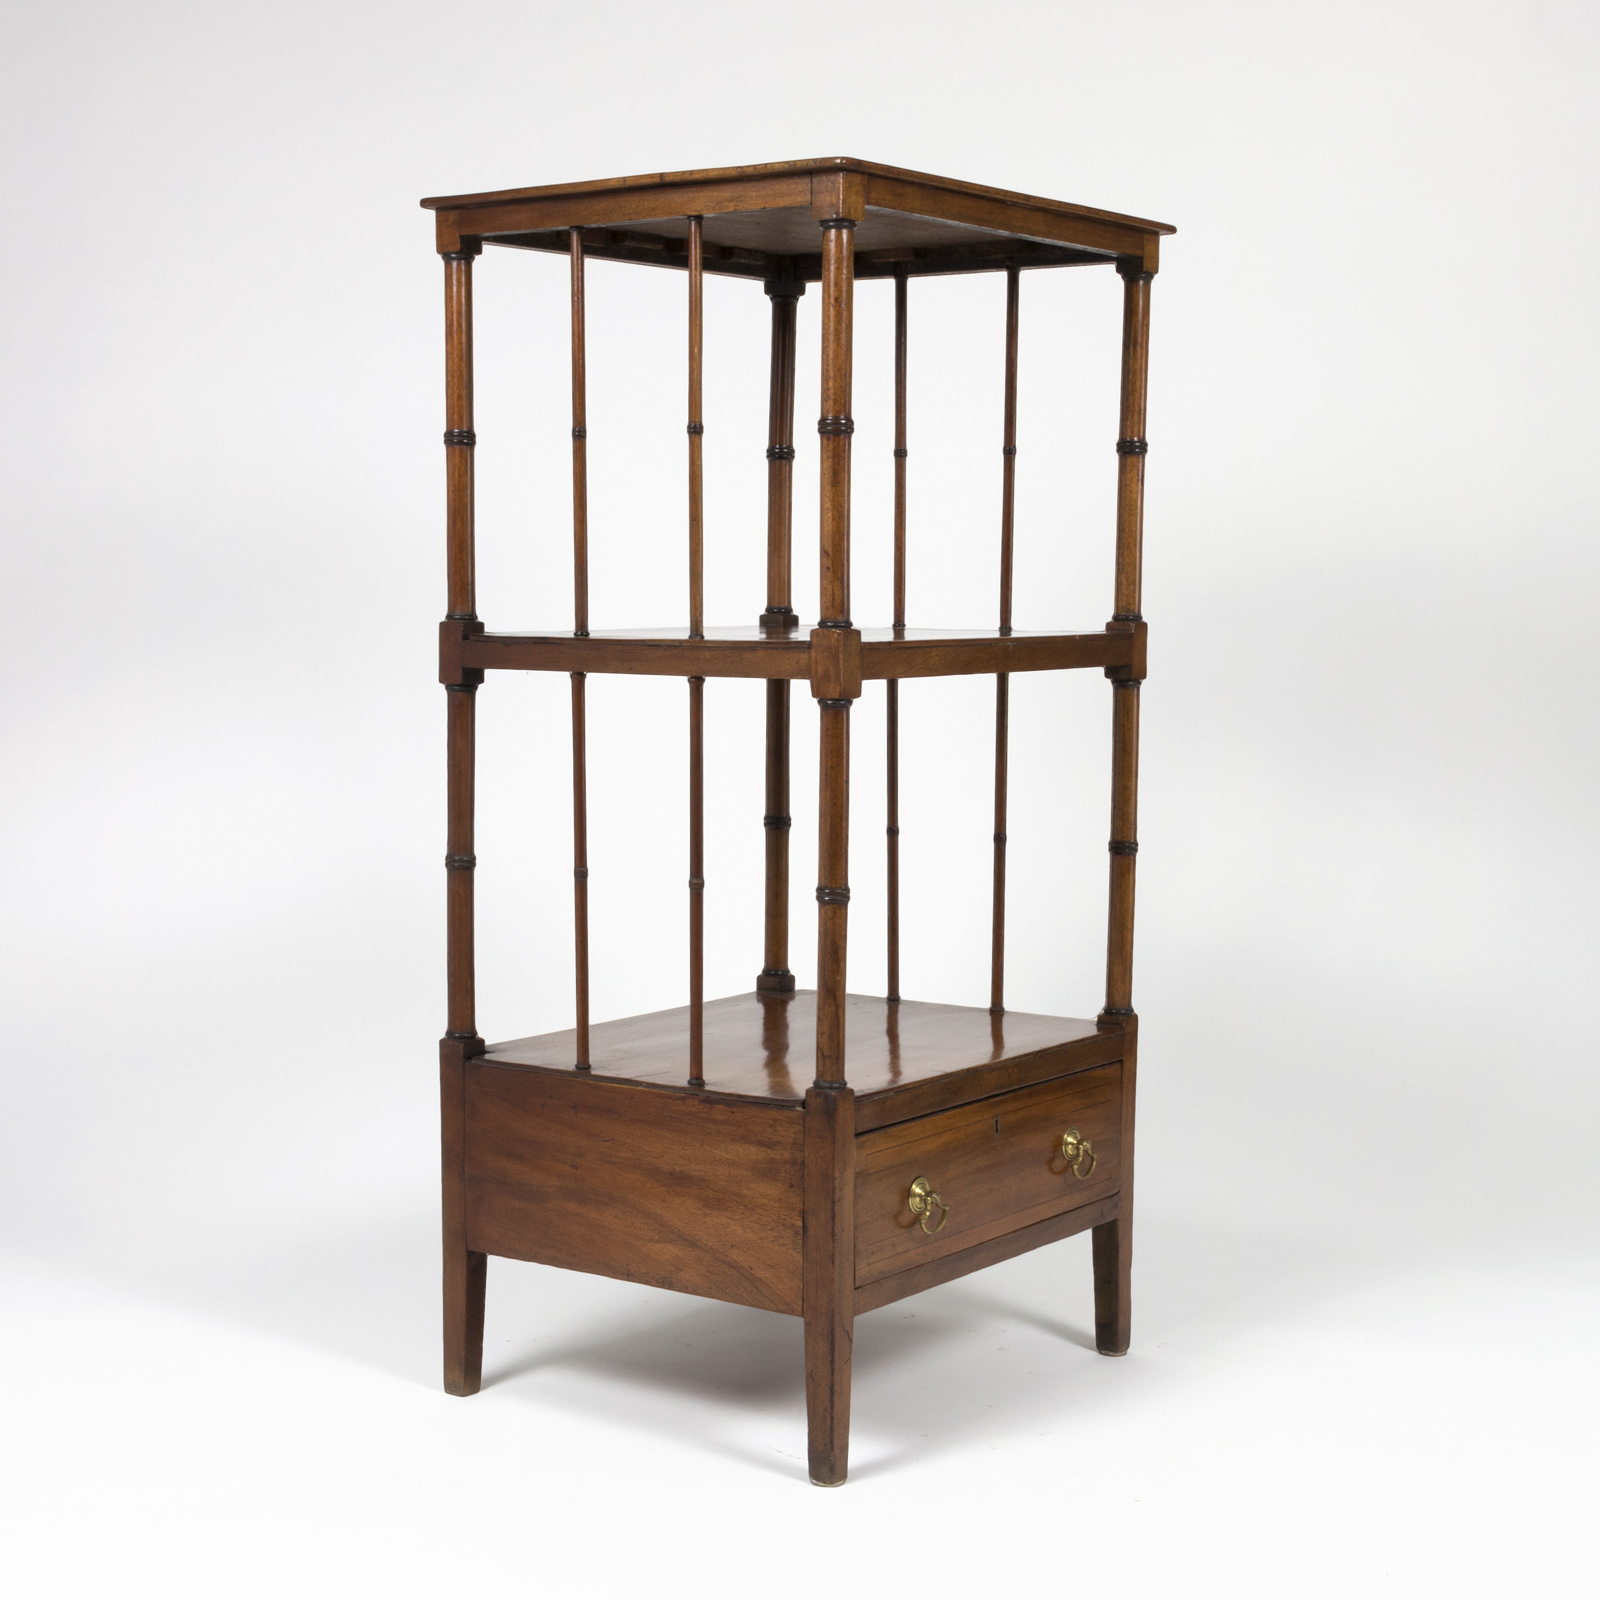 regency period mahogany etagere shelving english 415. Black Bedroom Furniture Sets. Home Design Ideas